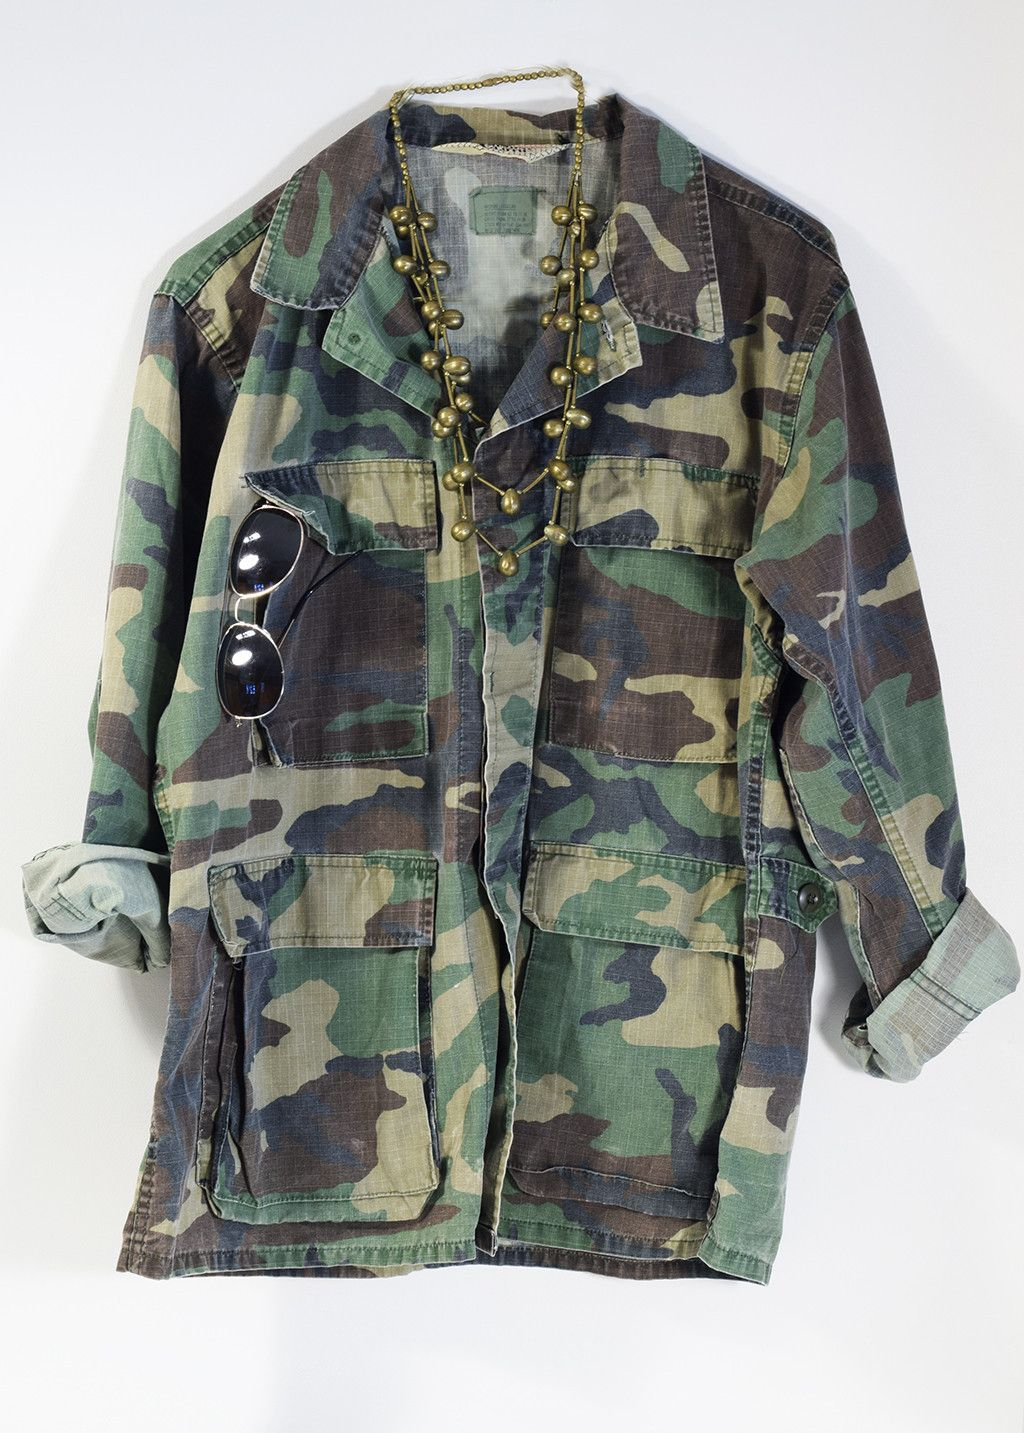 afe9c99e5 Vintage Military Jacket 70s Camo Army Issued Button Down Shirt All ...